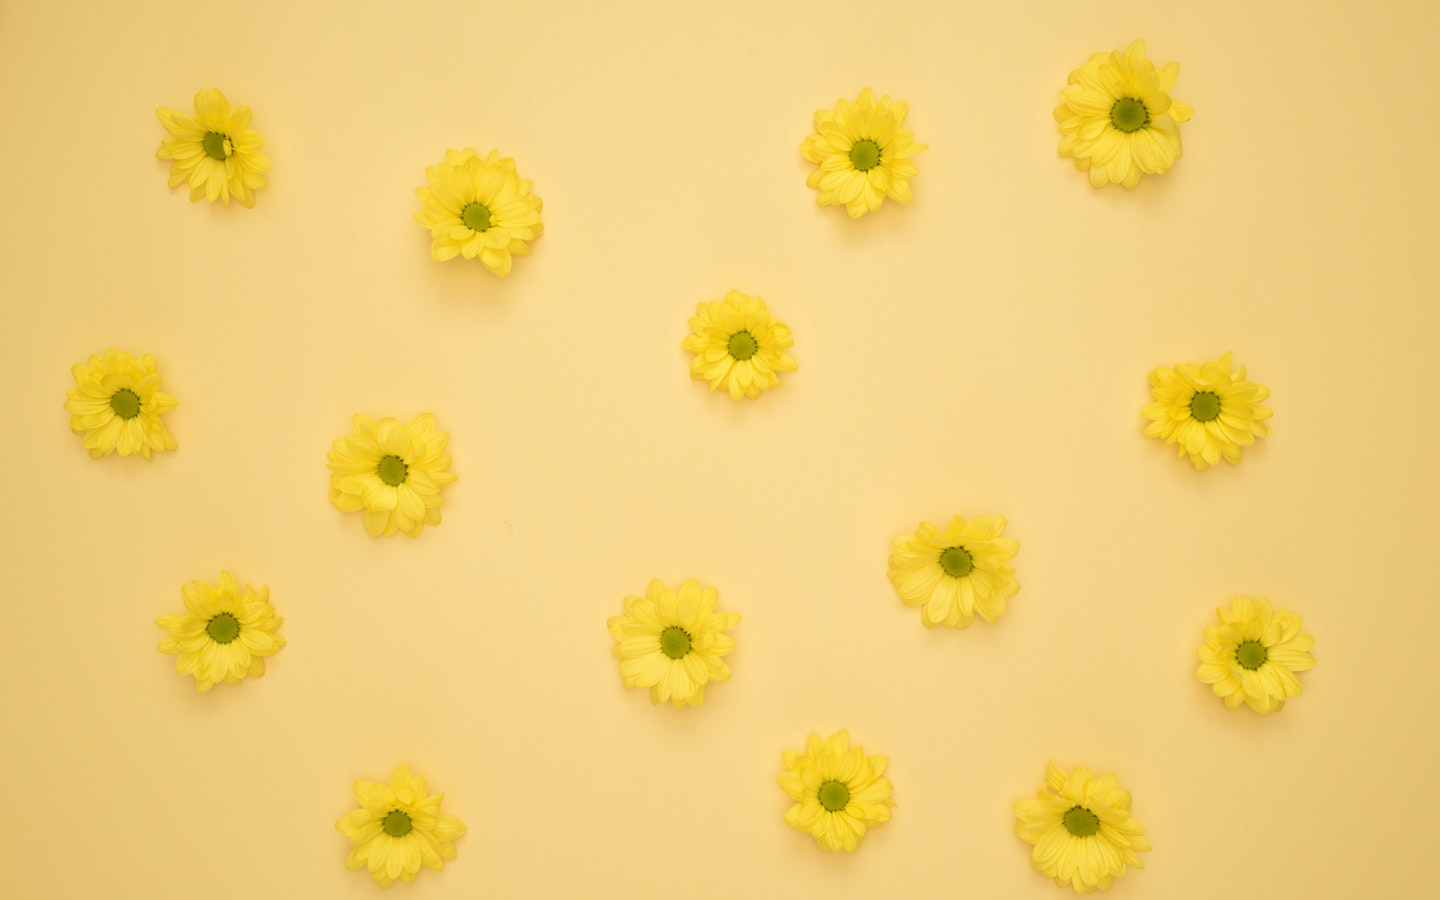 Flowers made from papers